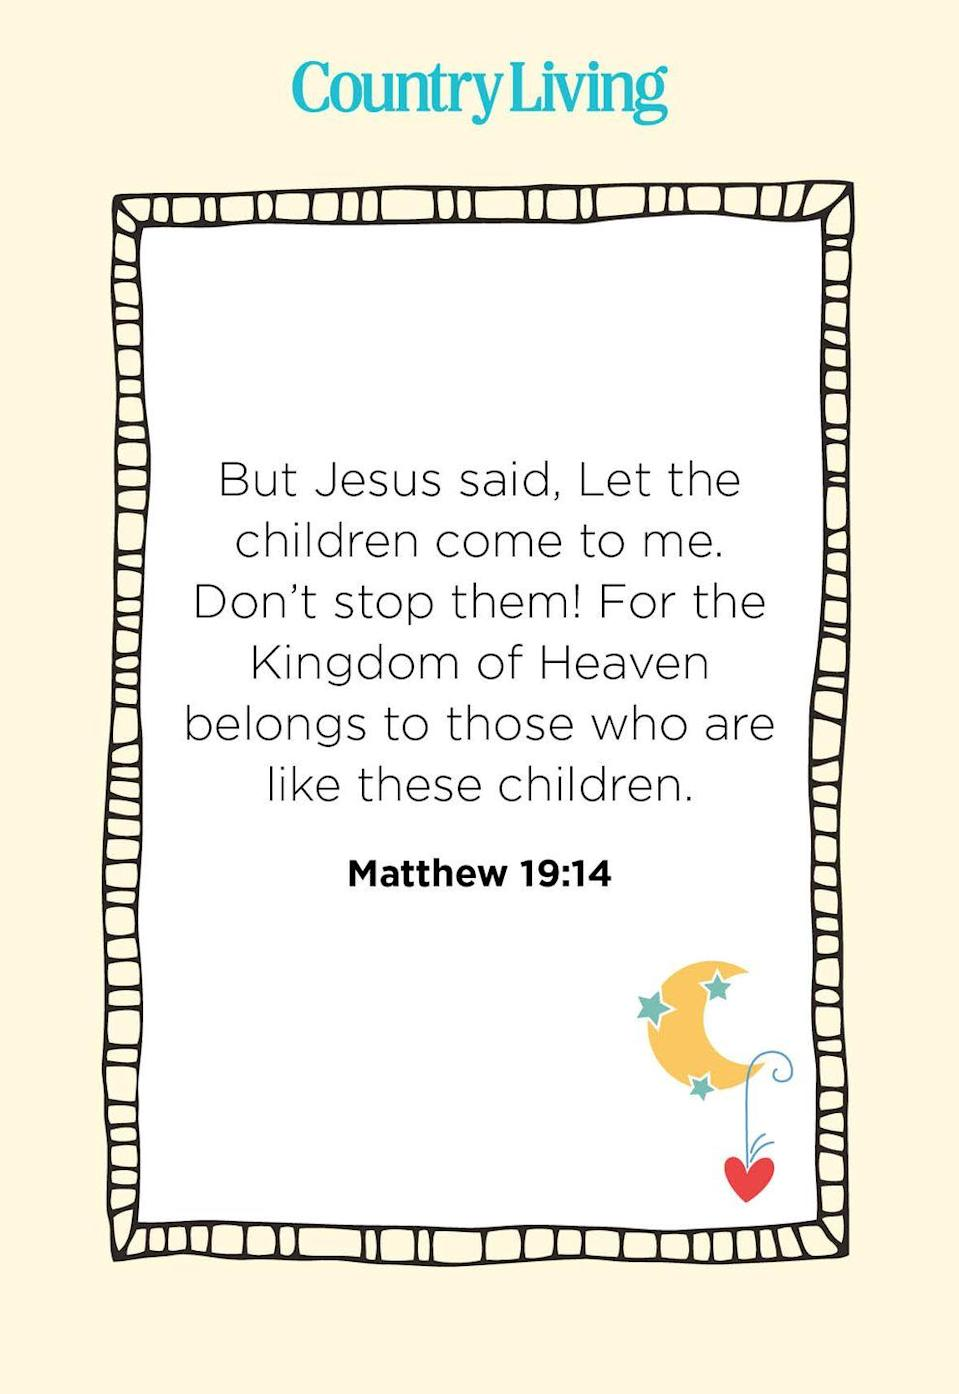 """<p>""""But Jesus said, Let the children come to me. Don't stop them! For the Kingdom of Heaven belongs to those who are like these children.""""</p>"""